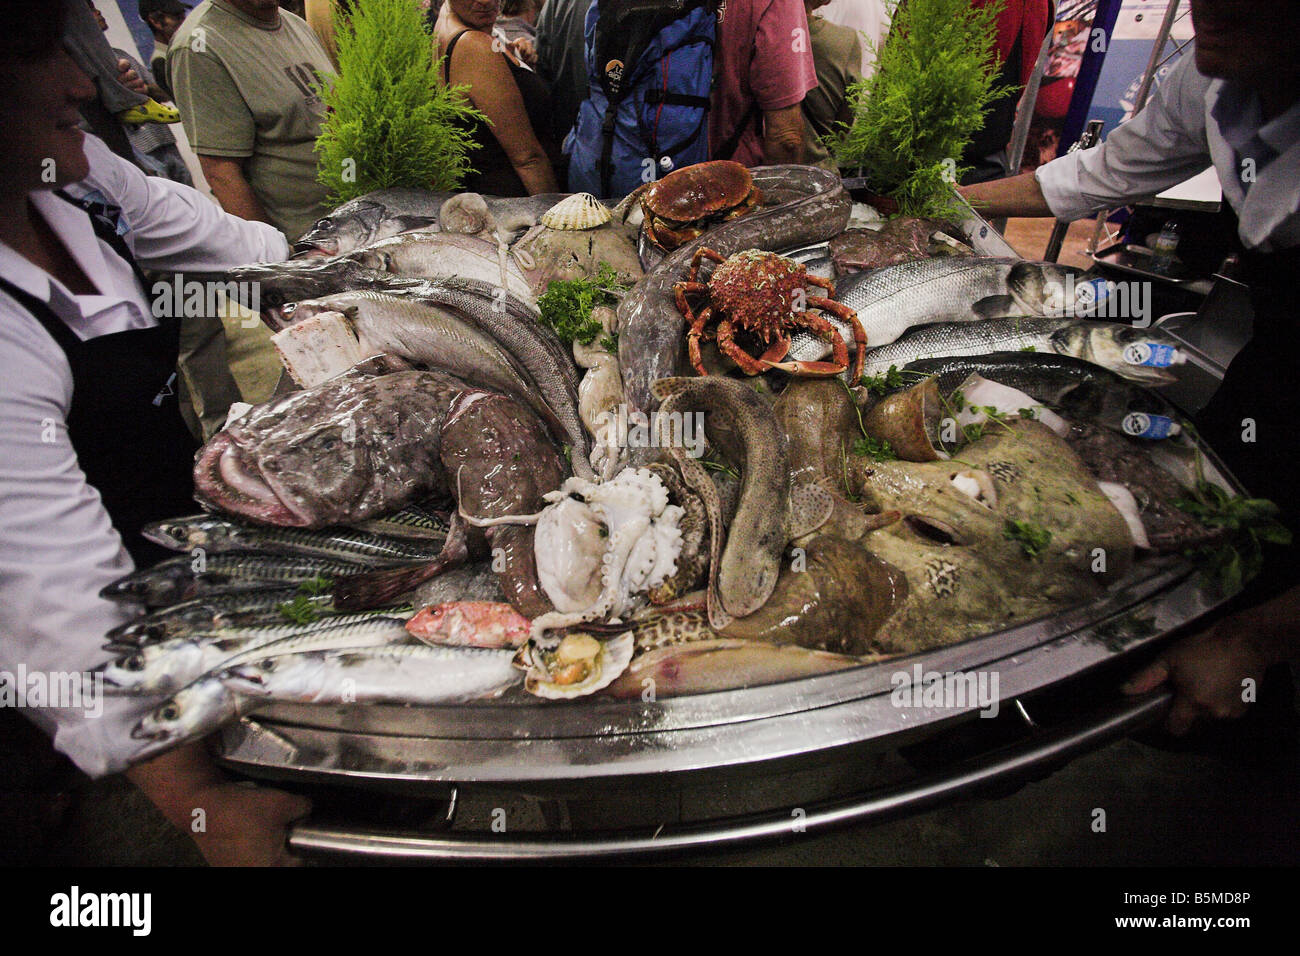 A tray of local fish on display at the Newlyn Fish Festival in Newlyn, near Penzance in Cornwall, the west of England. - Stock Image